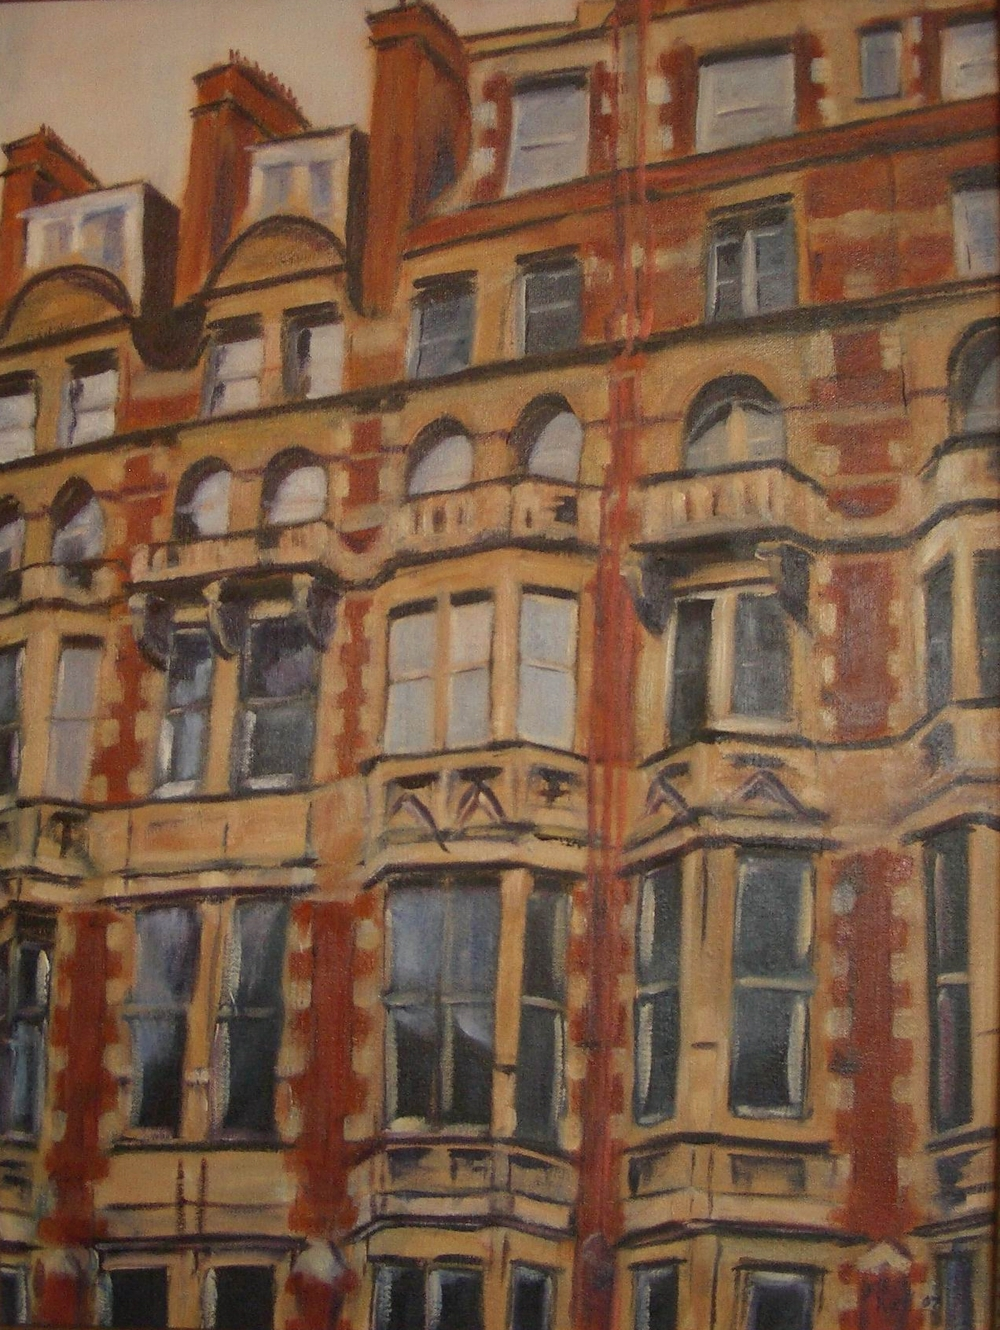 London Windows - 30x24